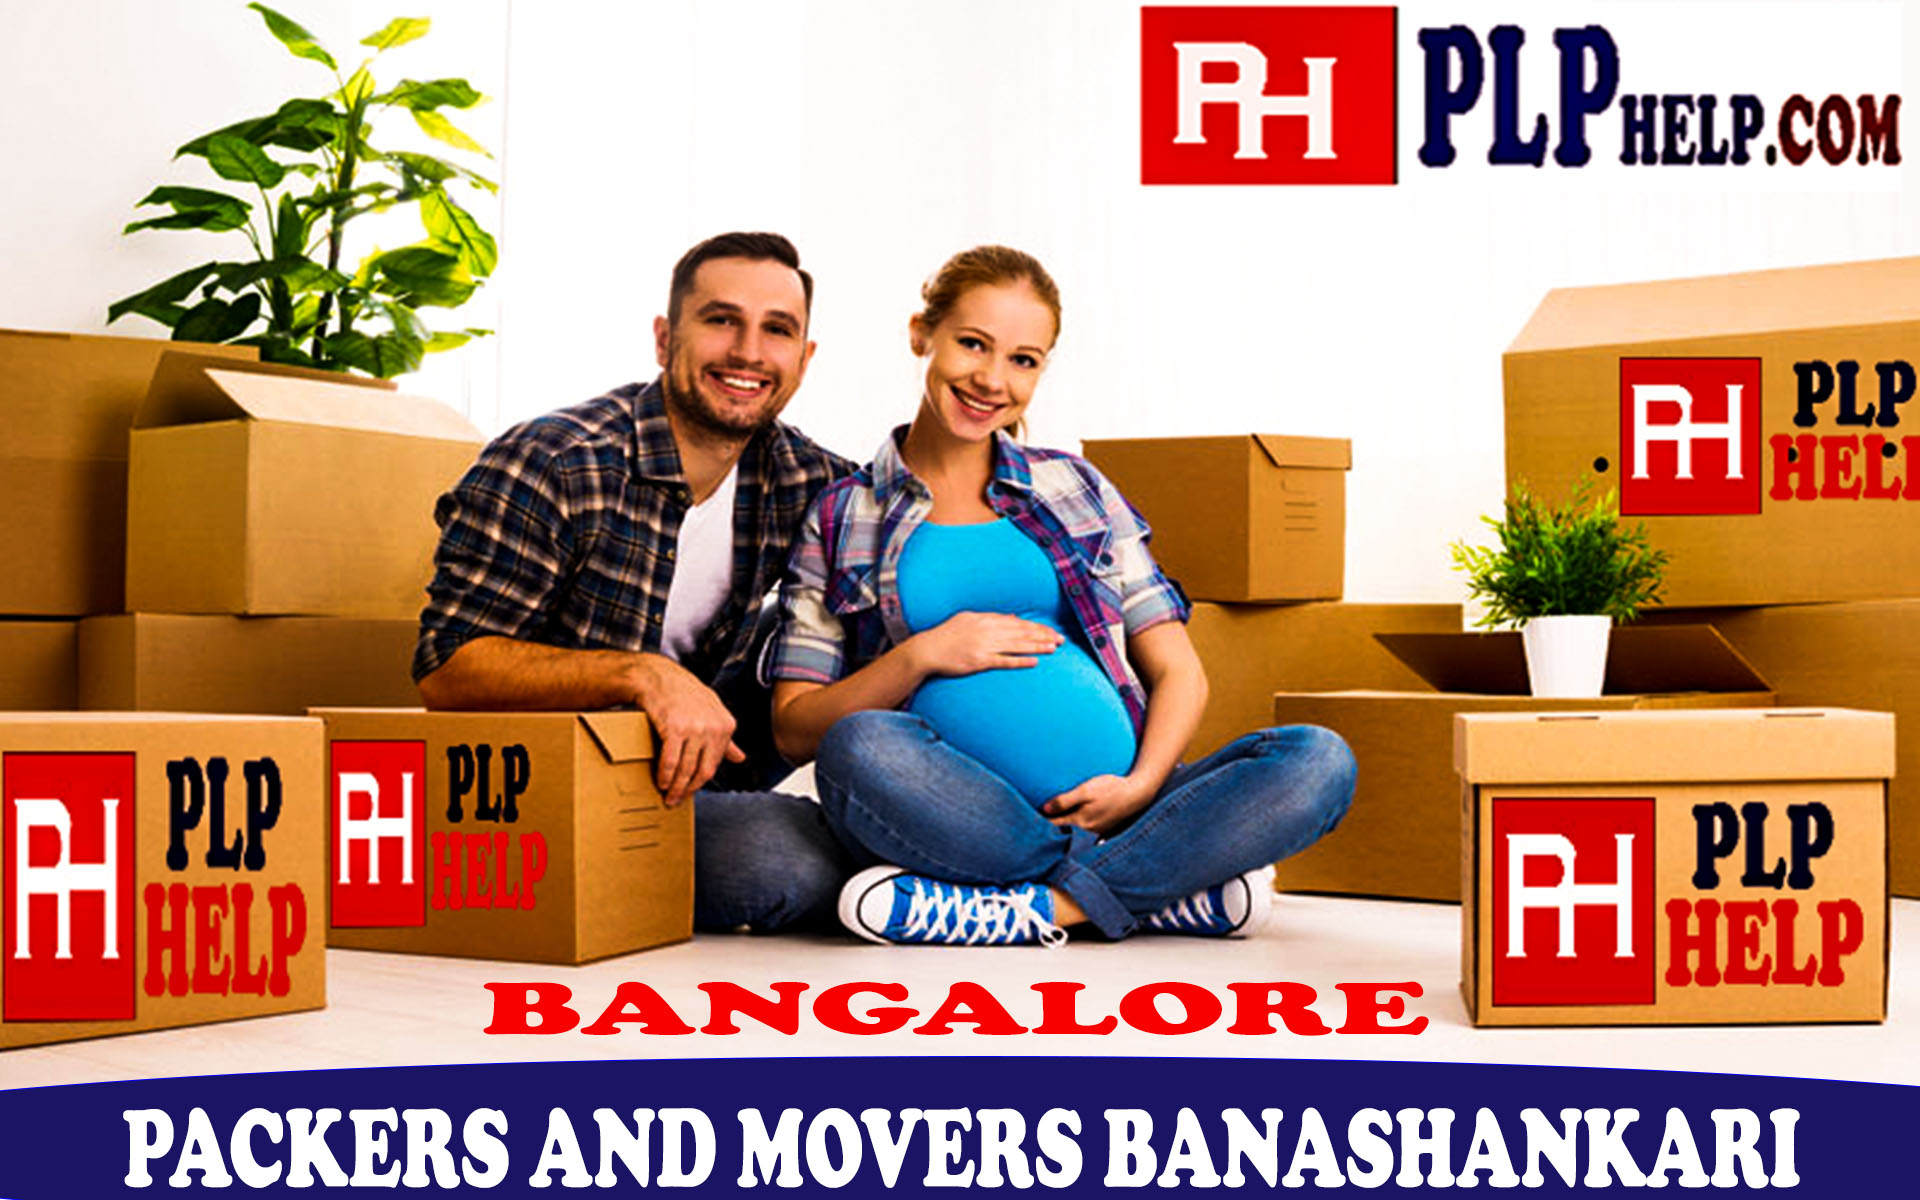 Packers and Movers banashankari